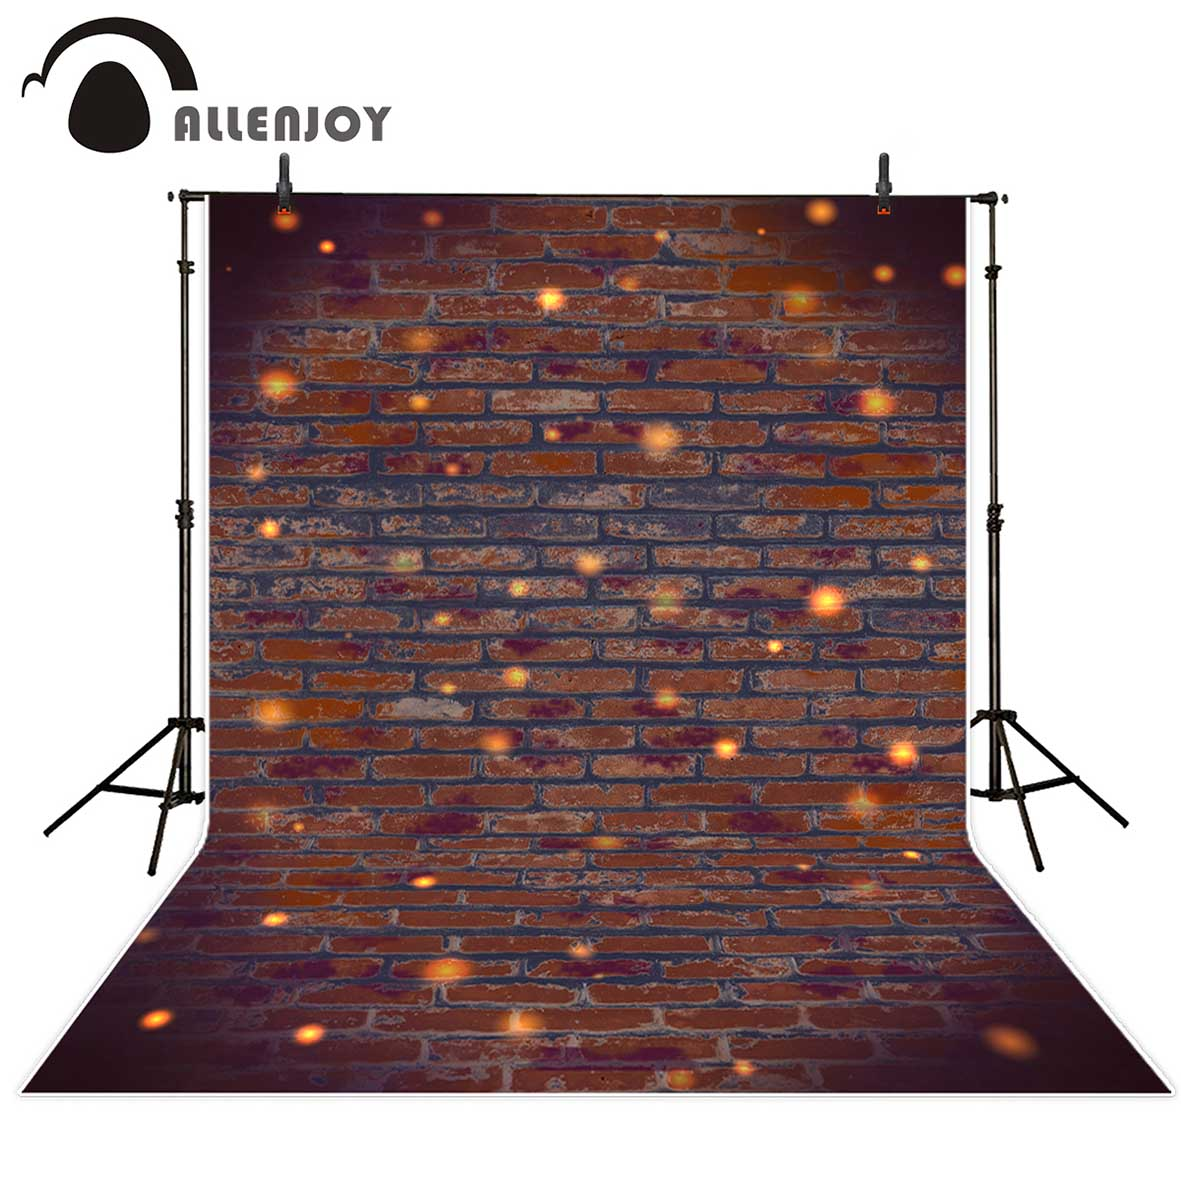 Allenjoy photographic background Retro Classic Red Photo Brick wall new arrivals backdrop photocall Children photography studio allenjoy photo background children backdrop cat night roof sky photographic background photography studio funds